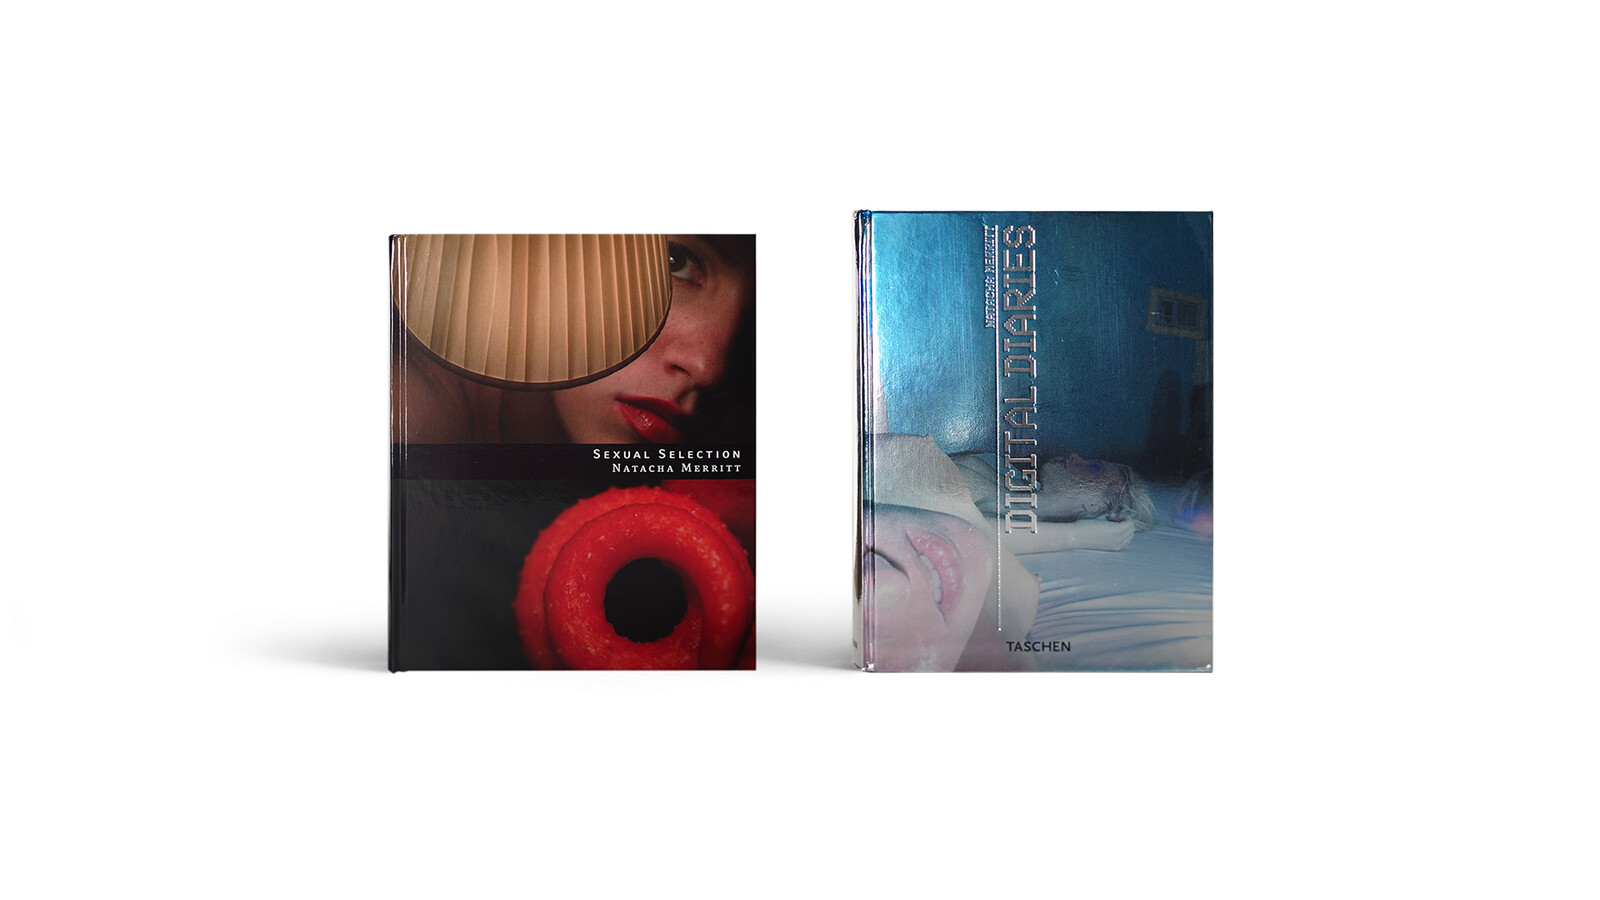 Refreshed book mockups of Merritt's two published art books.